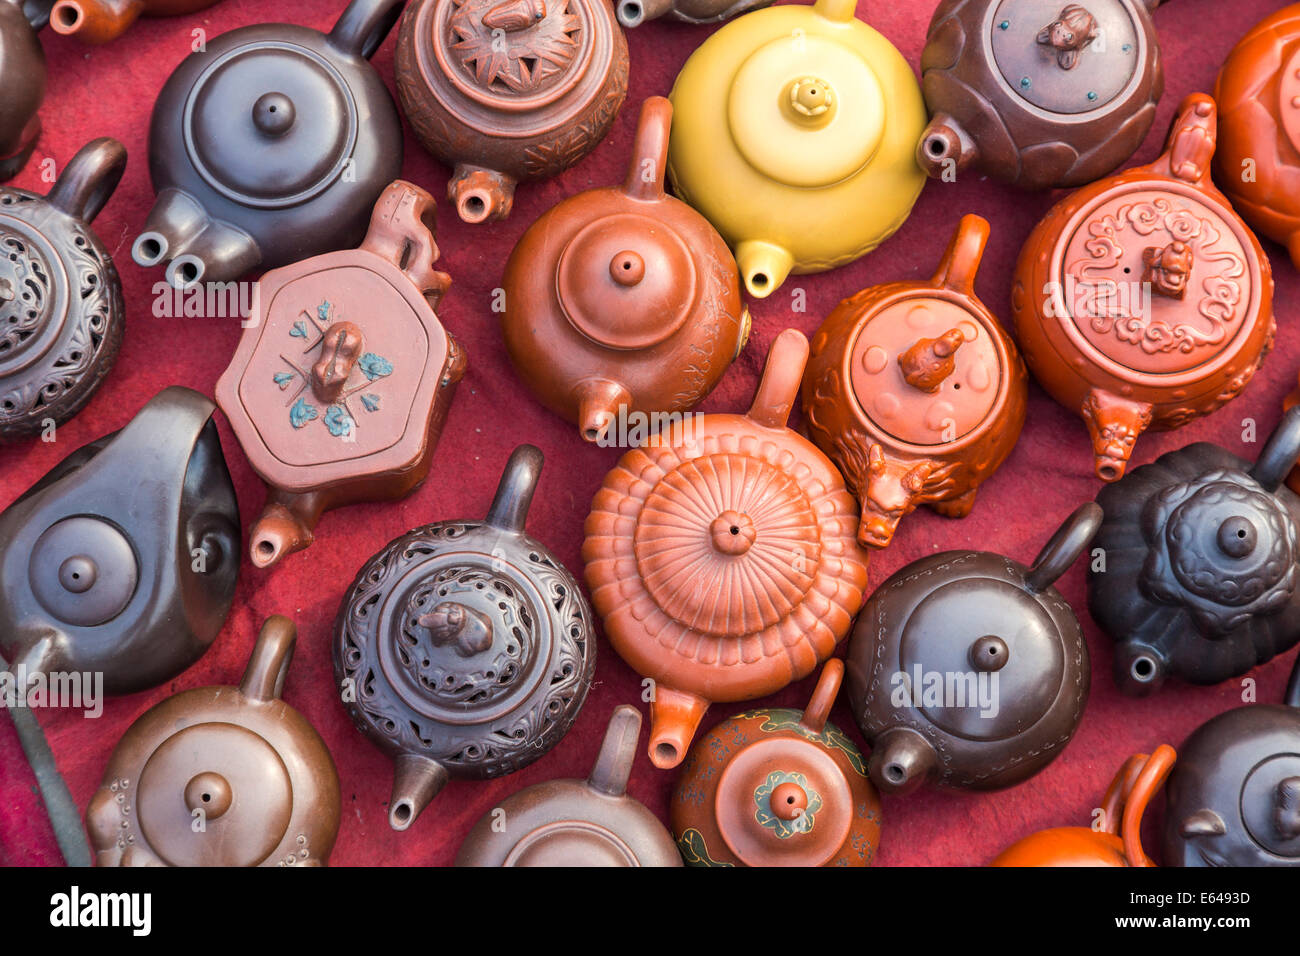 Panjiayuan Antique Market is Beijing's biggest and best-known arts, crafts, and Chinese antiques market, Beijing, - Stock Image